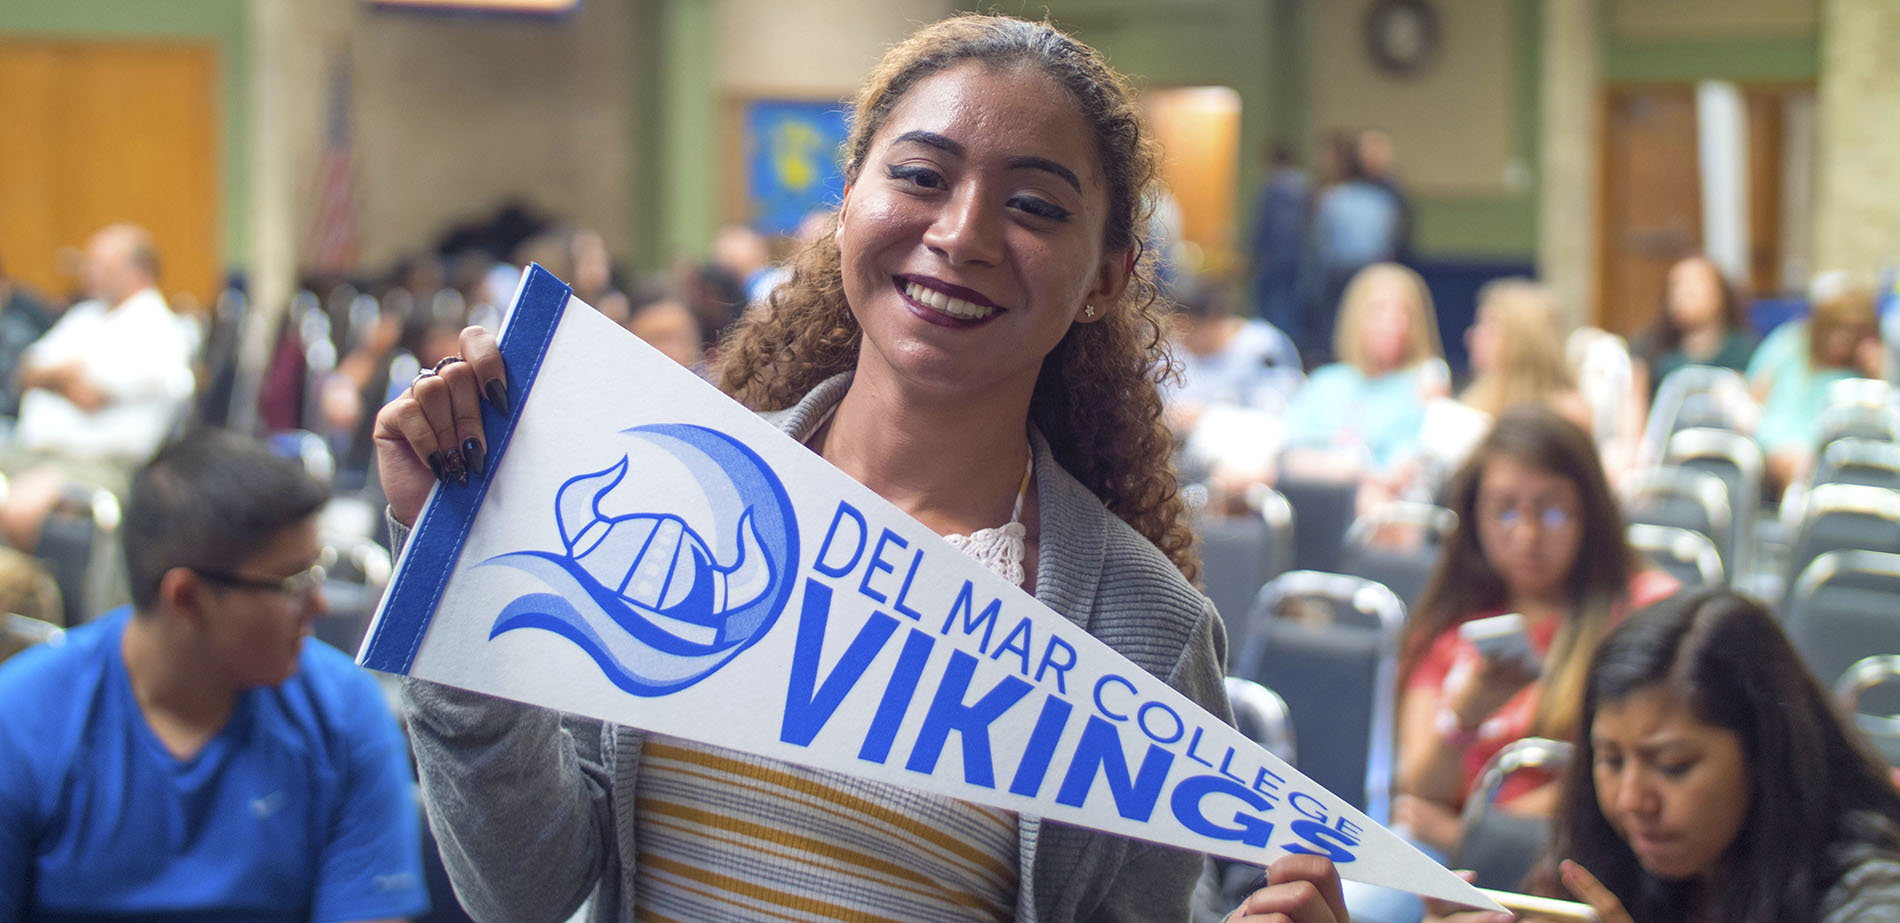 A student holding up a Del Mar College pennant